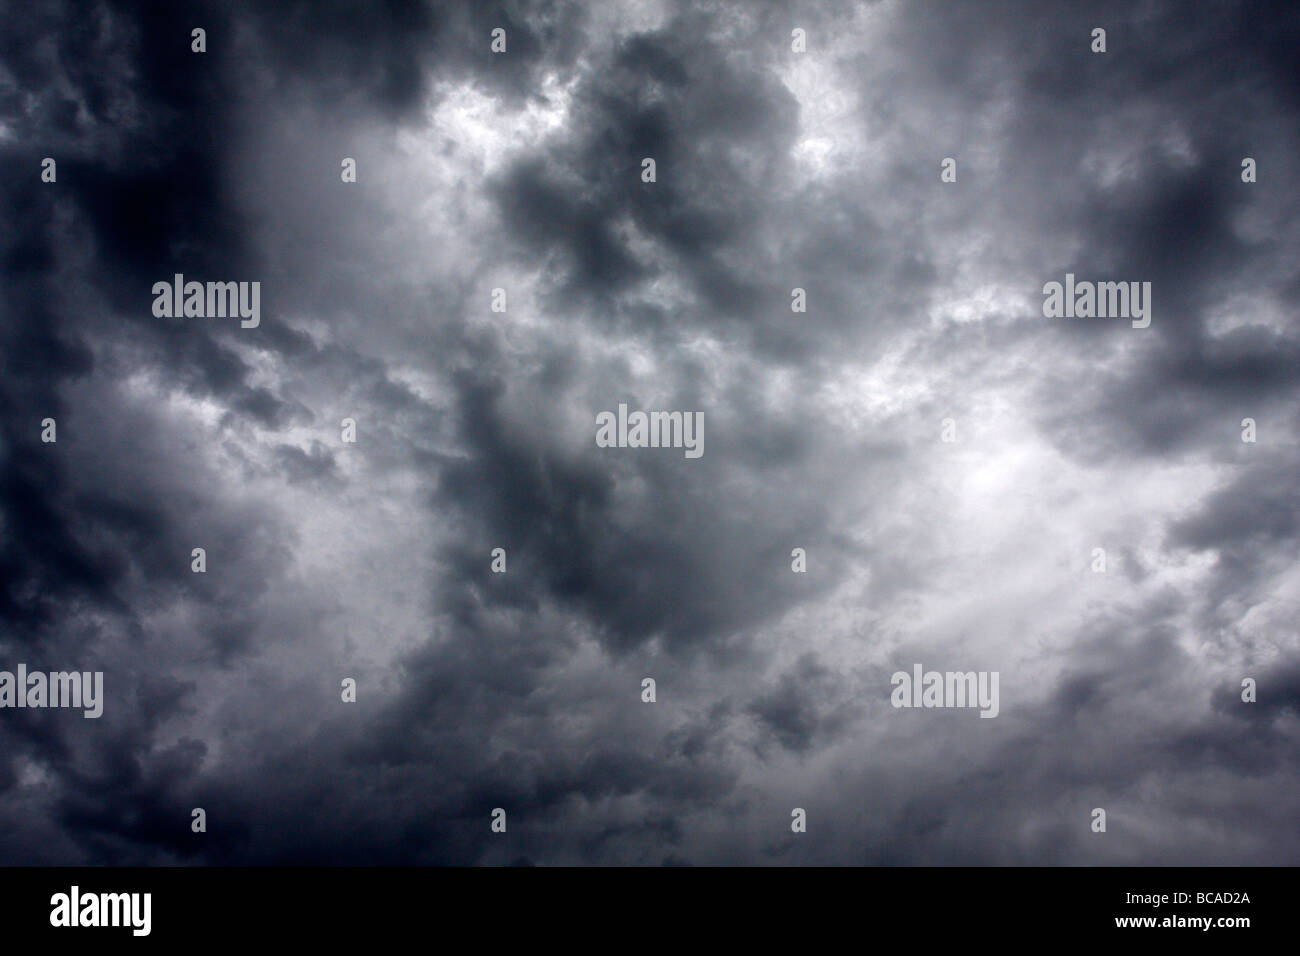 Clouds overhead, detail of thunderstorm. - Stock Image